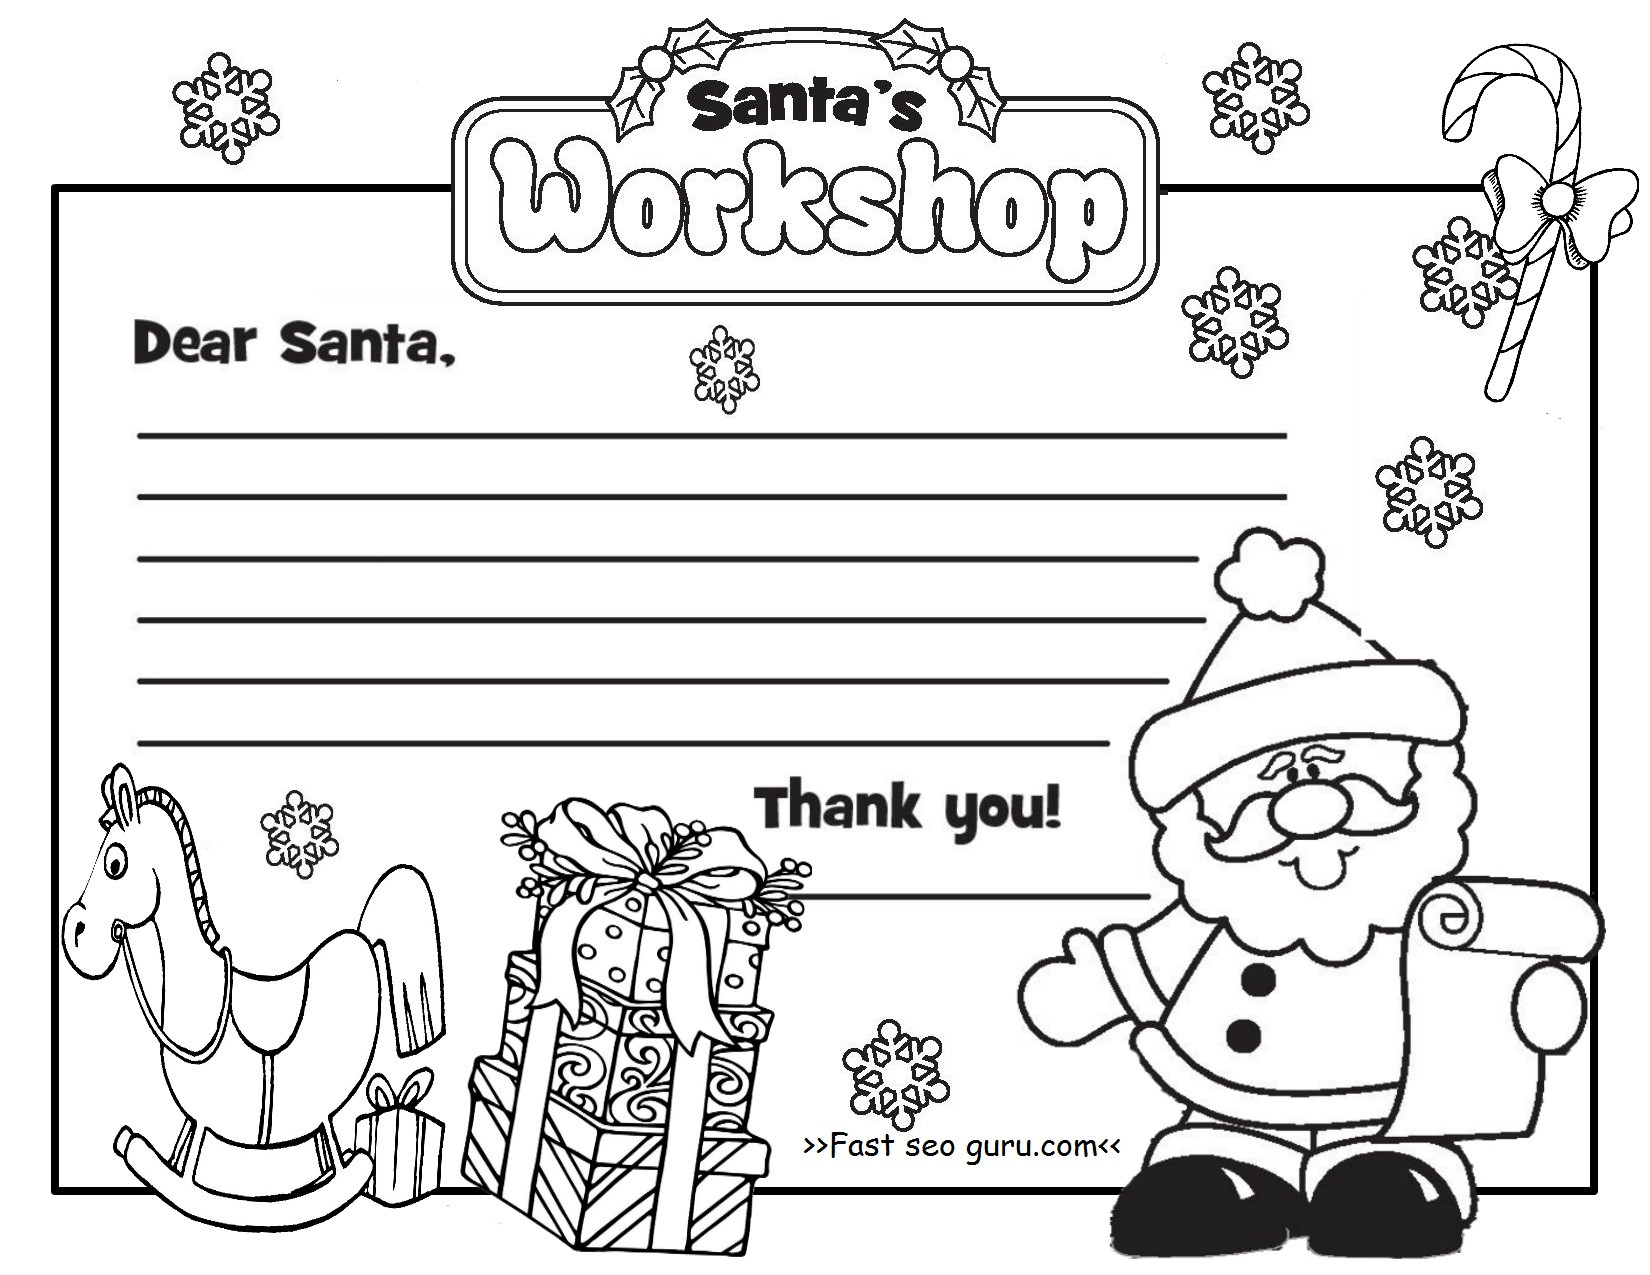 Coloring Santa Letter With Page To Free Pages Fine Fiscalreform